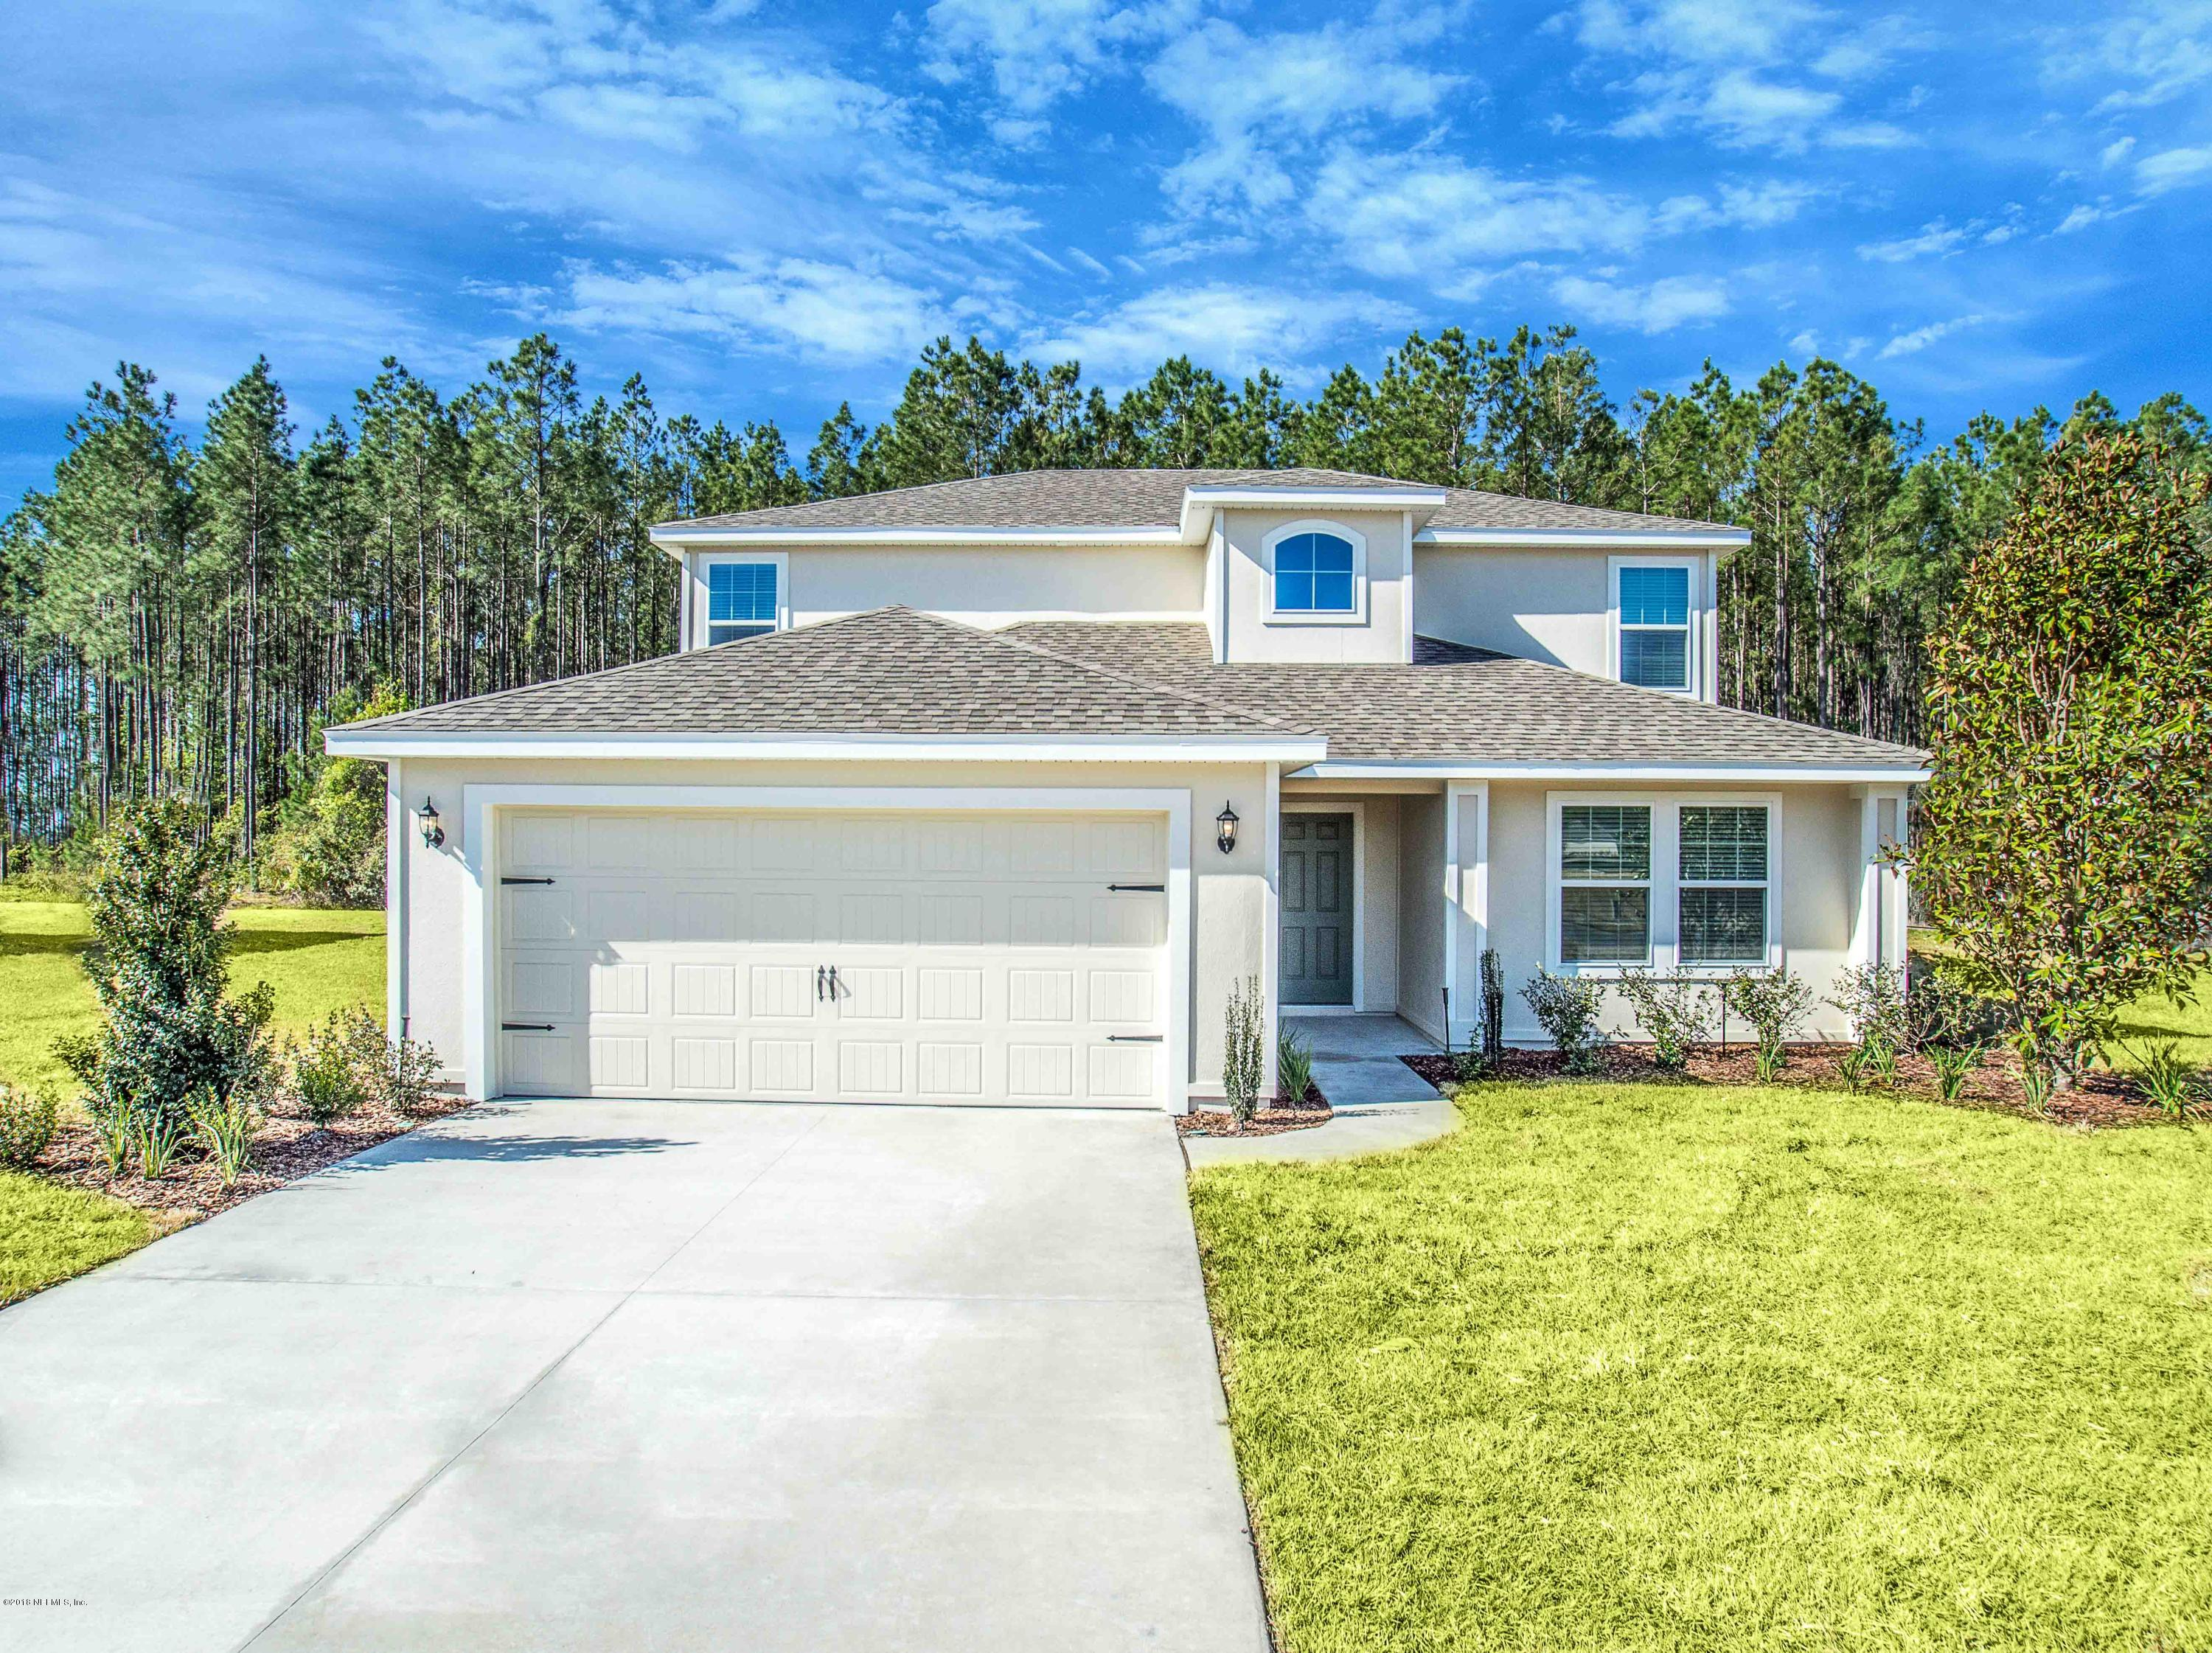 77808 LUMBER CREEK, YULEE, FLORIDA 32097, 5 Bedrooms Bedrooms, ,2 BathroomsBathrooms,Residential - single family,For sale,LUMBER CREEK,952660